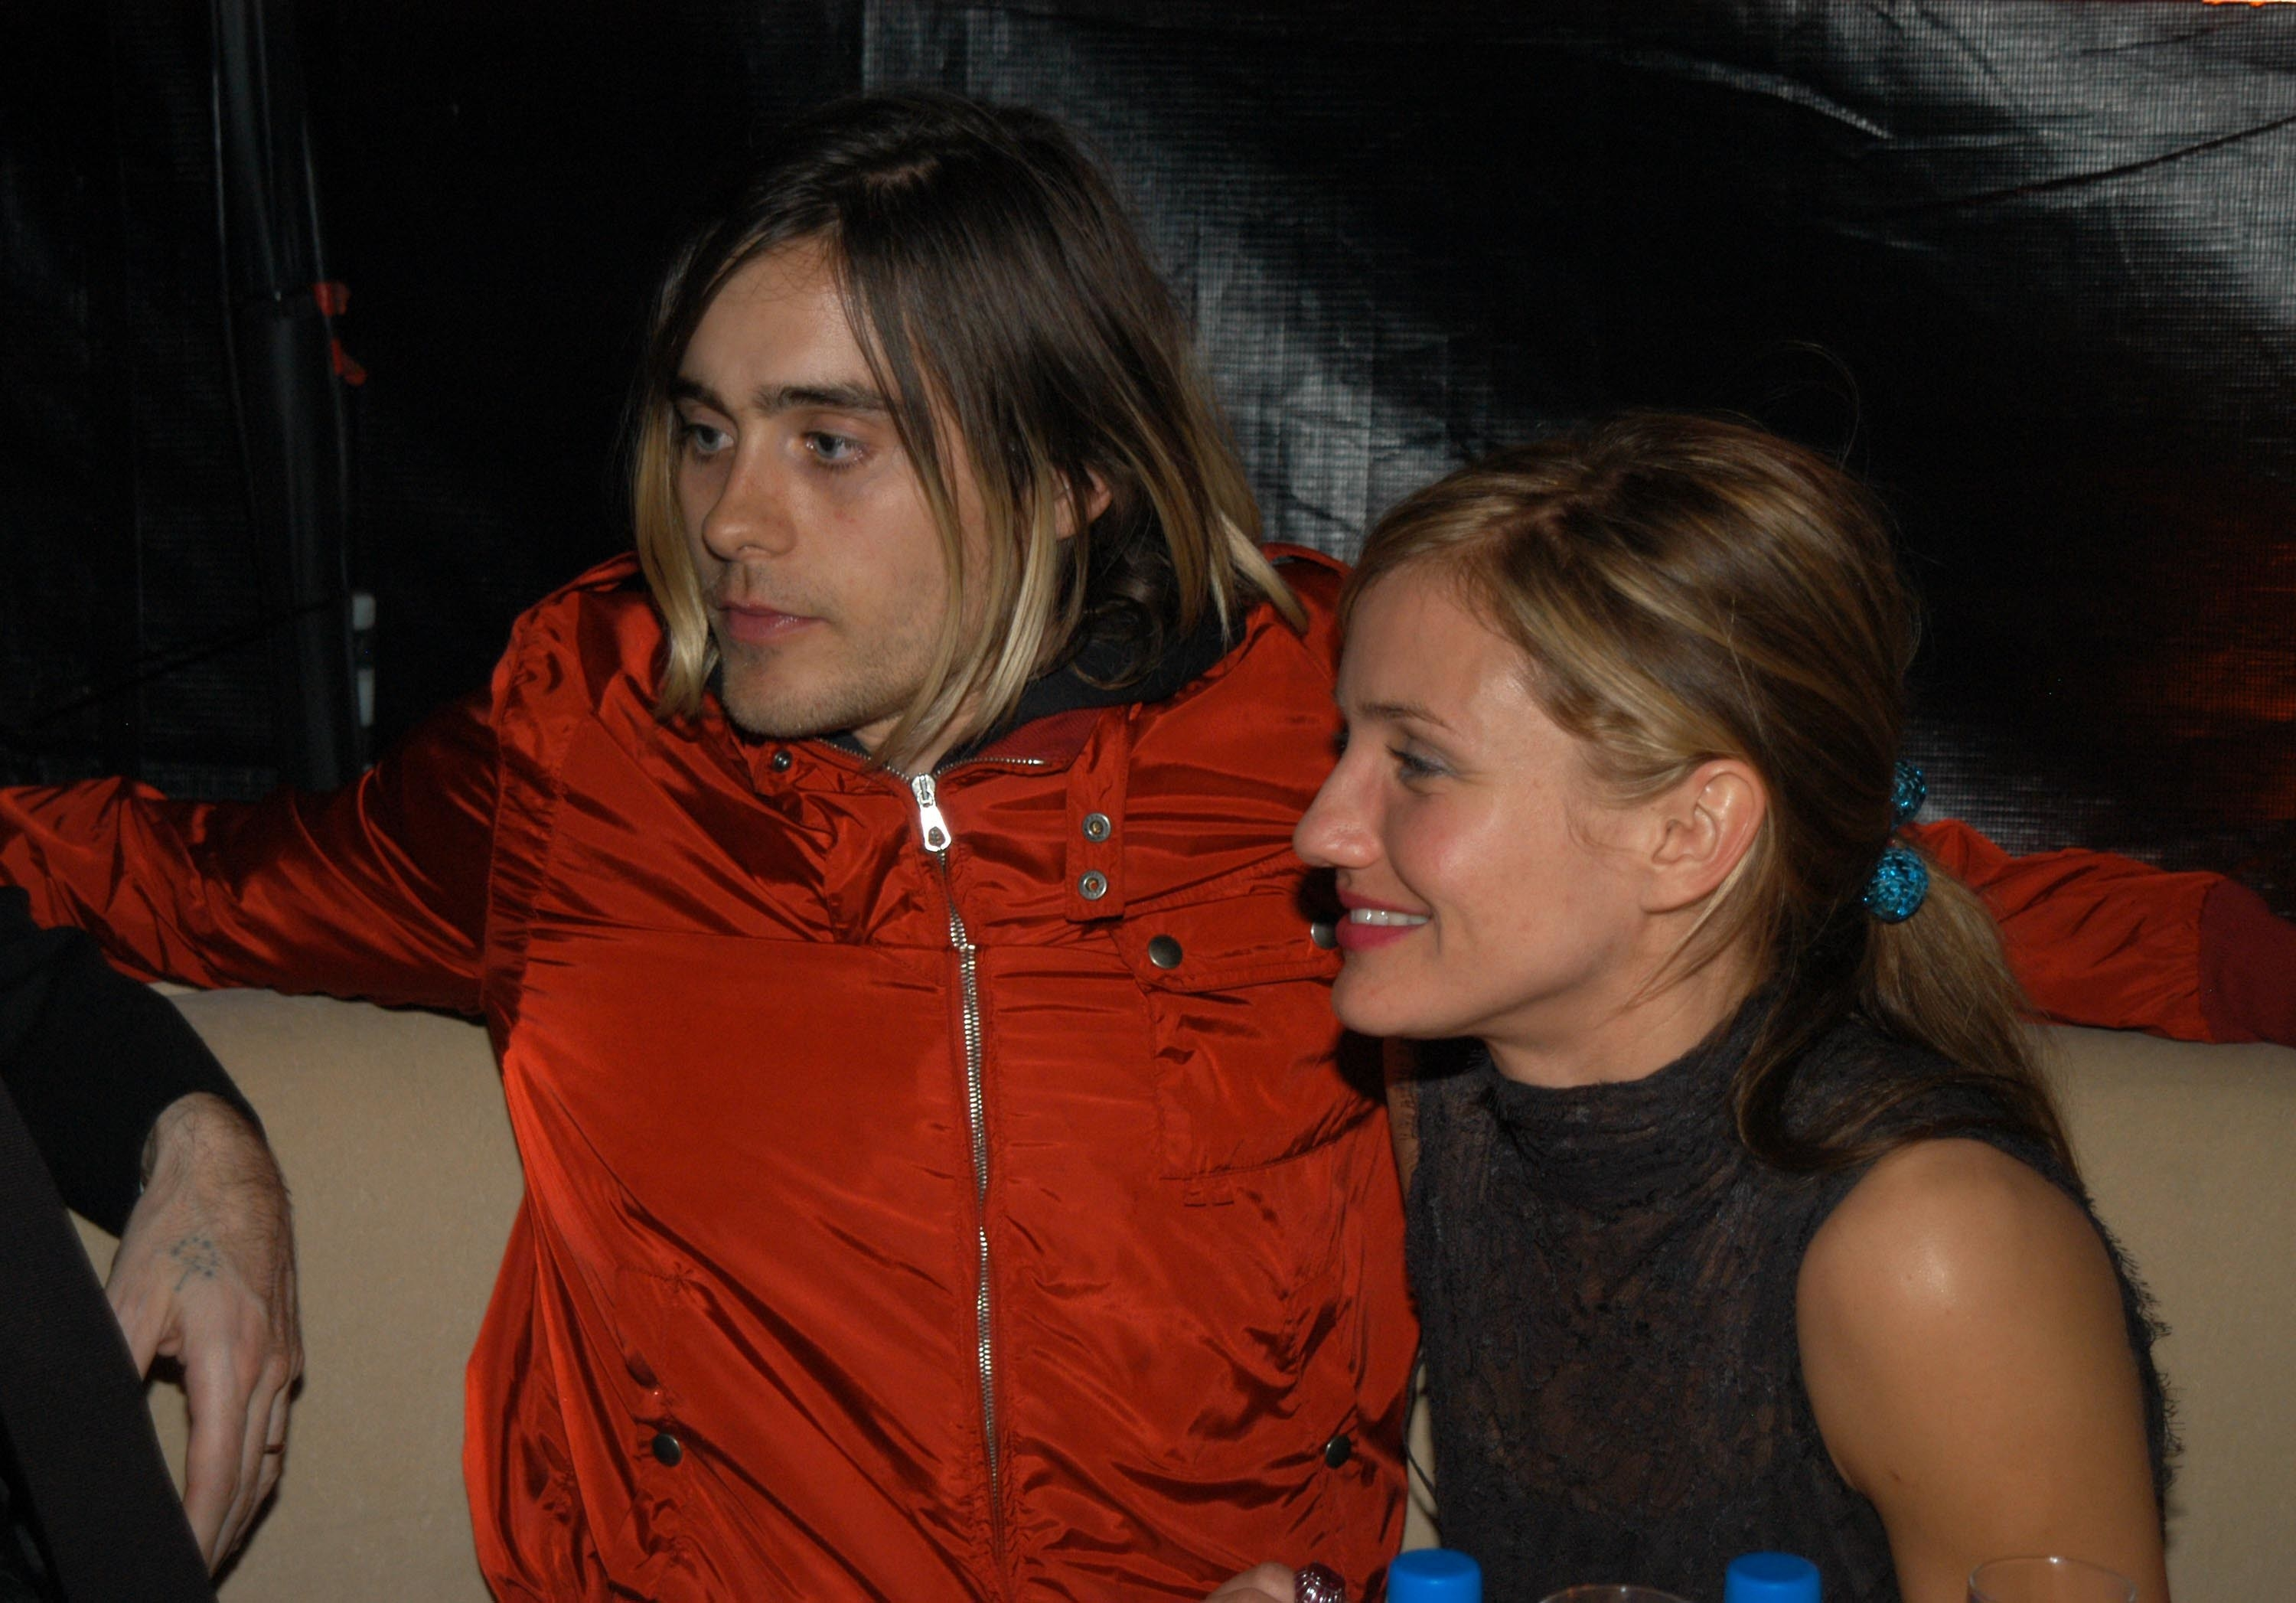 Jared Leto and Cameron Diaz hanging out backstage at an event in the early '00s